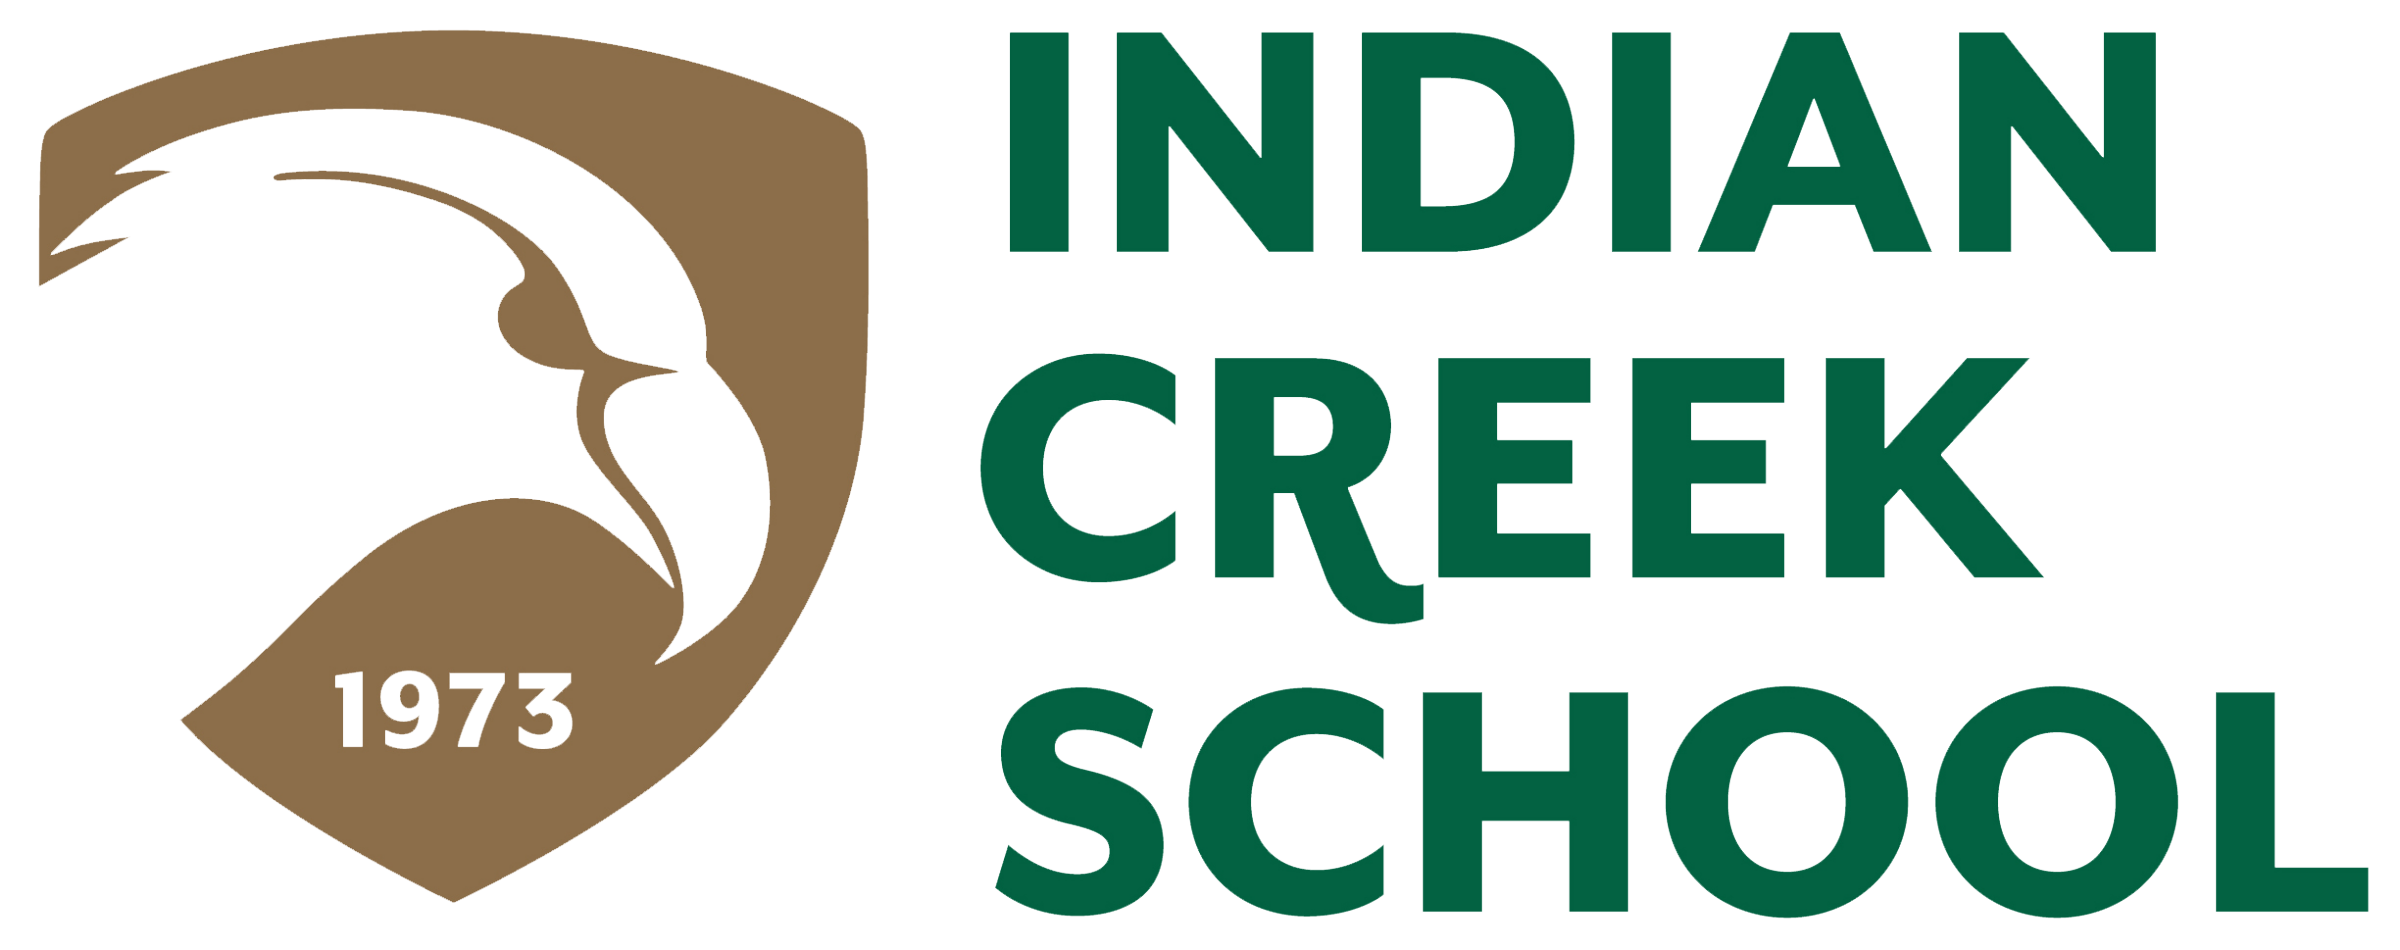 Indian Creek School